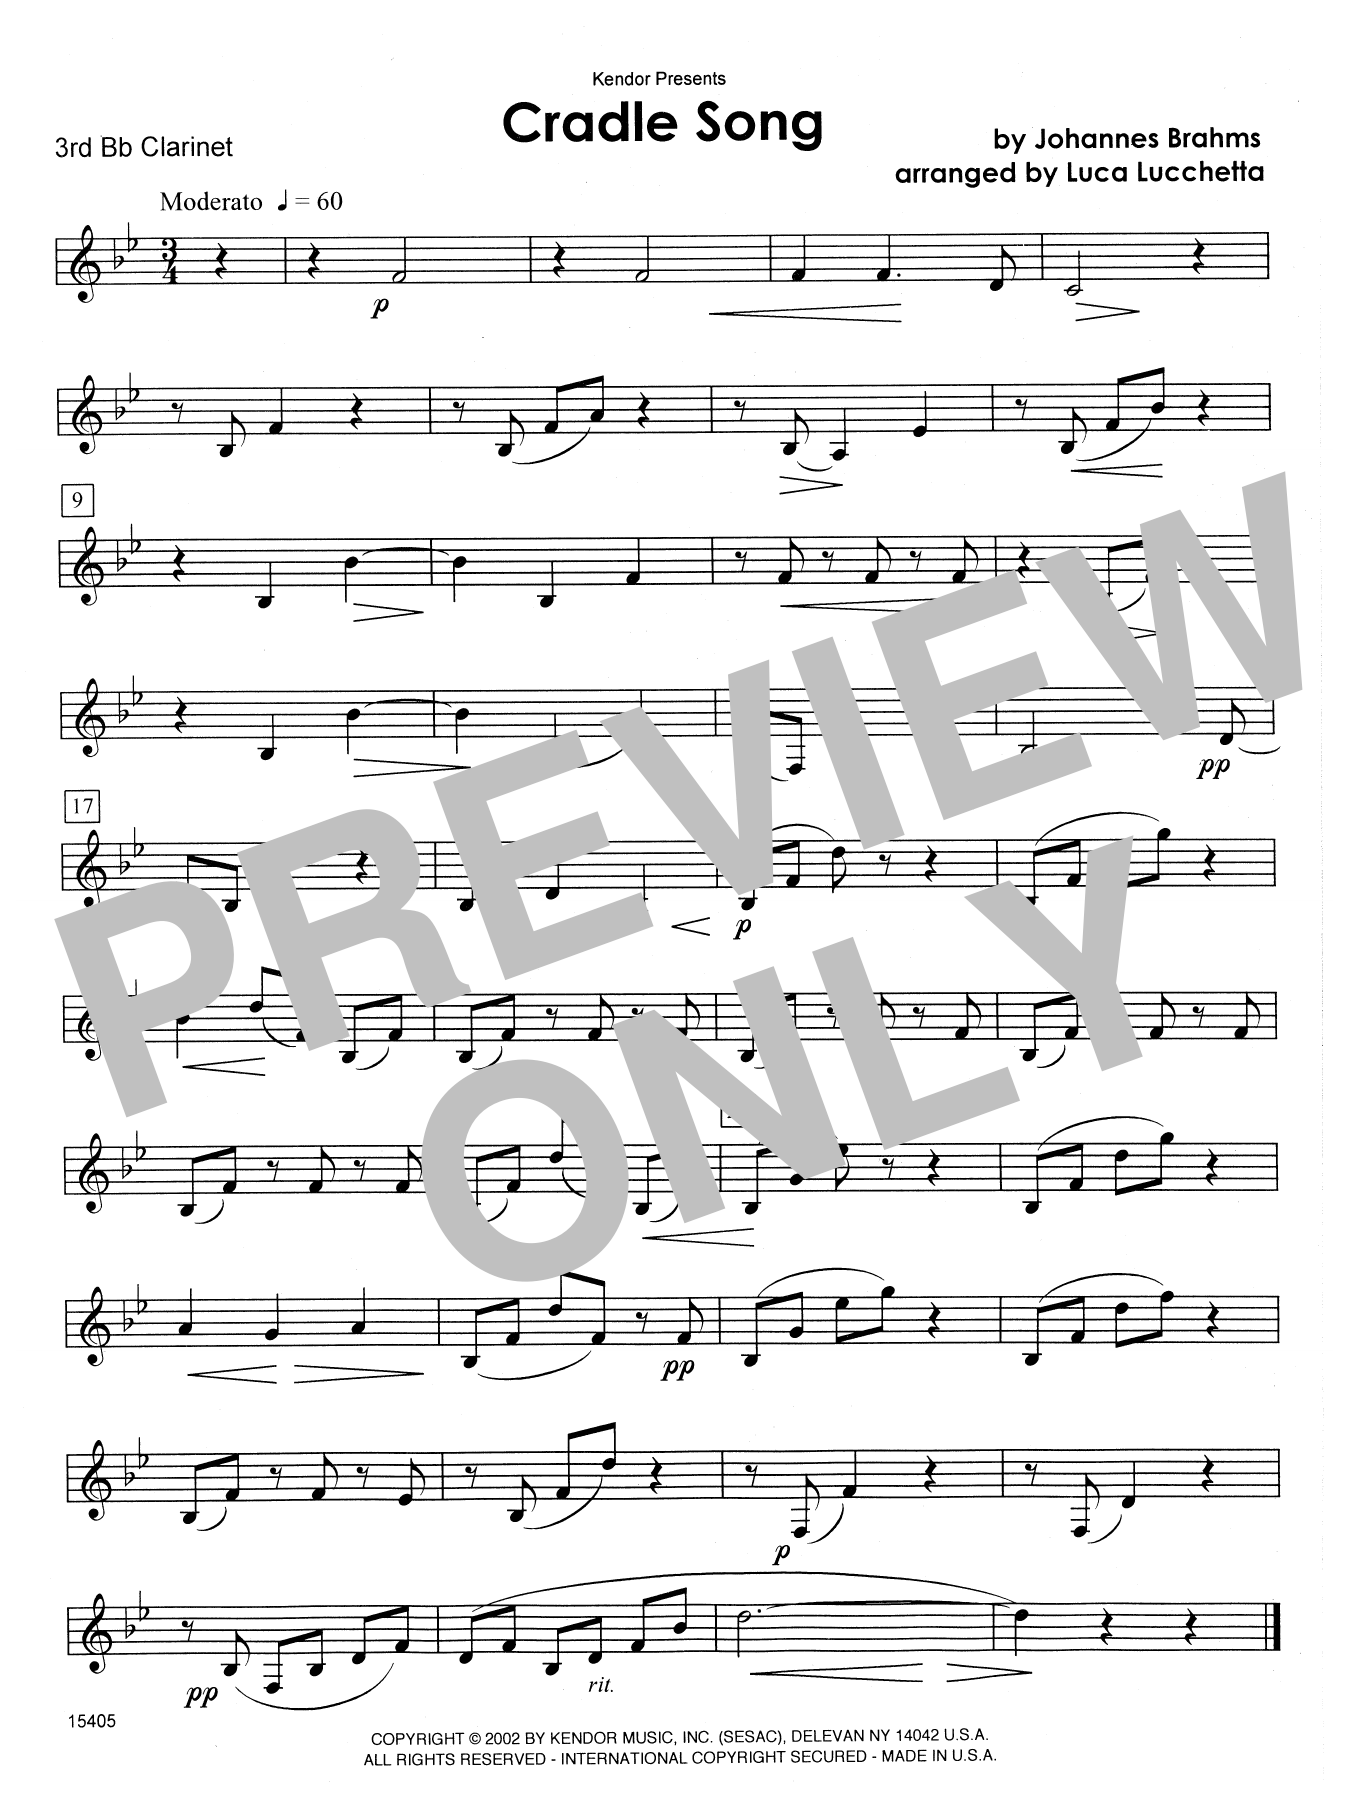 Cradle Song - 3rd Bb Clarinet Sheet Music